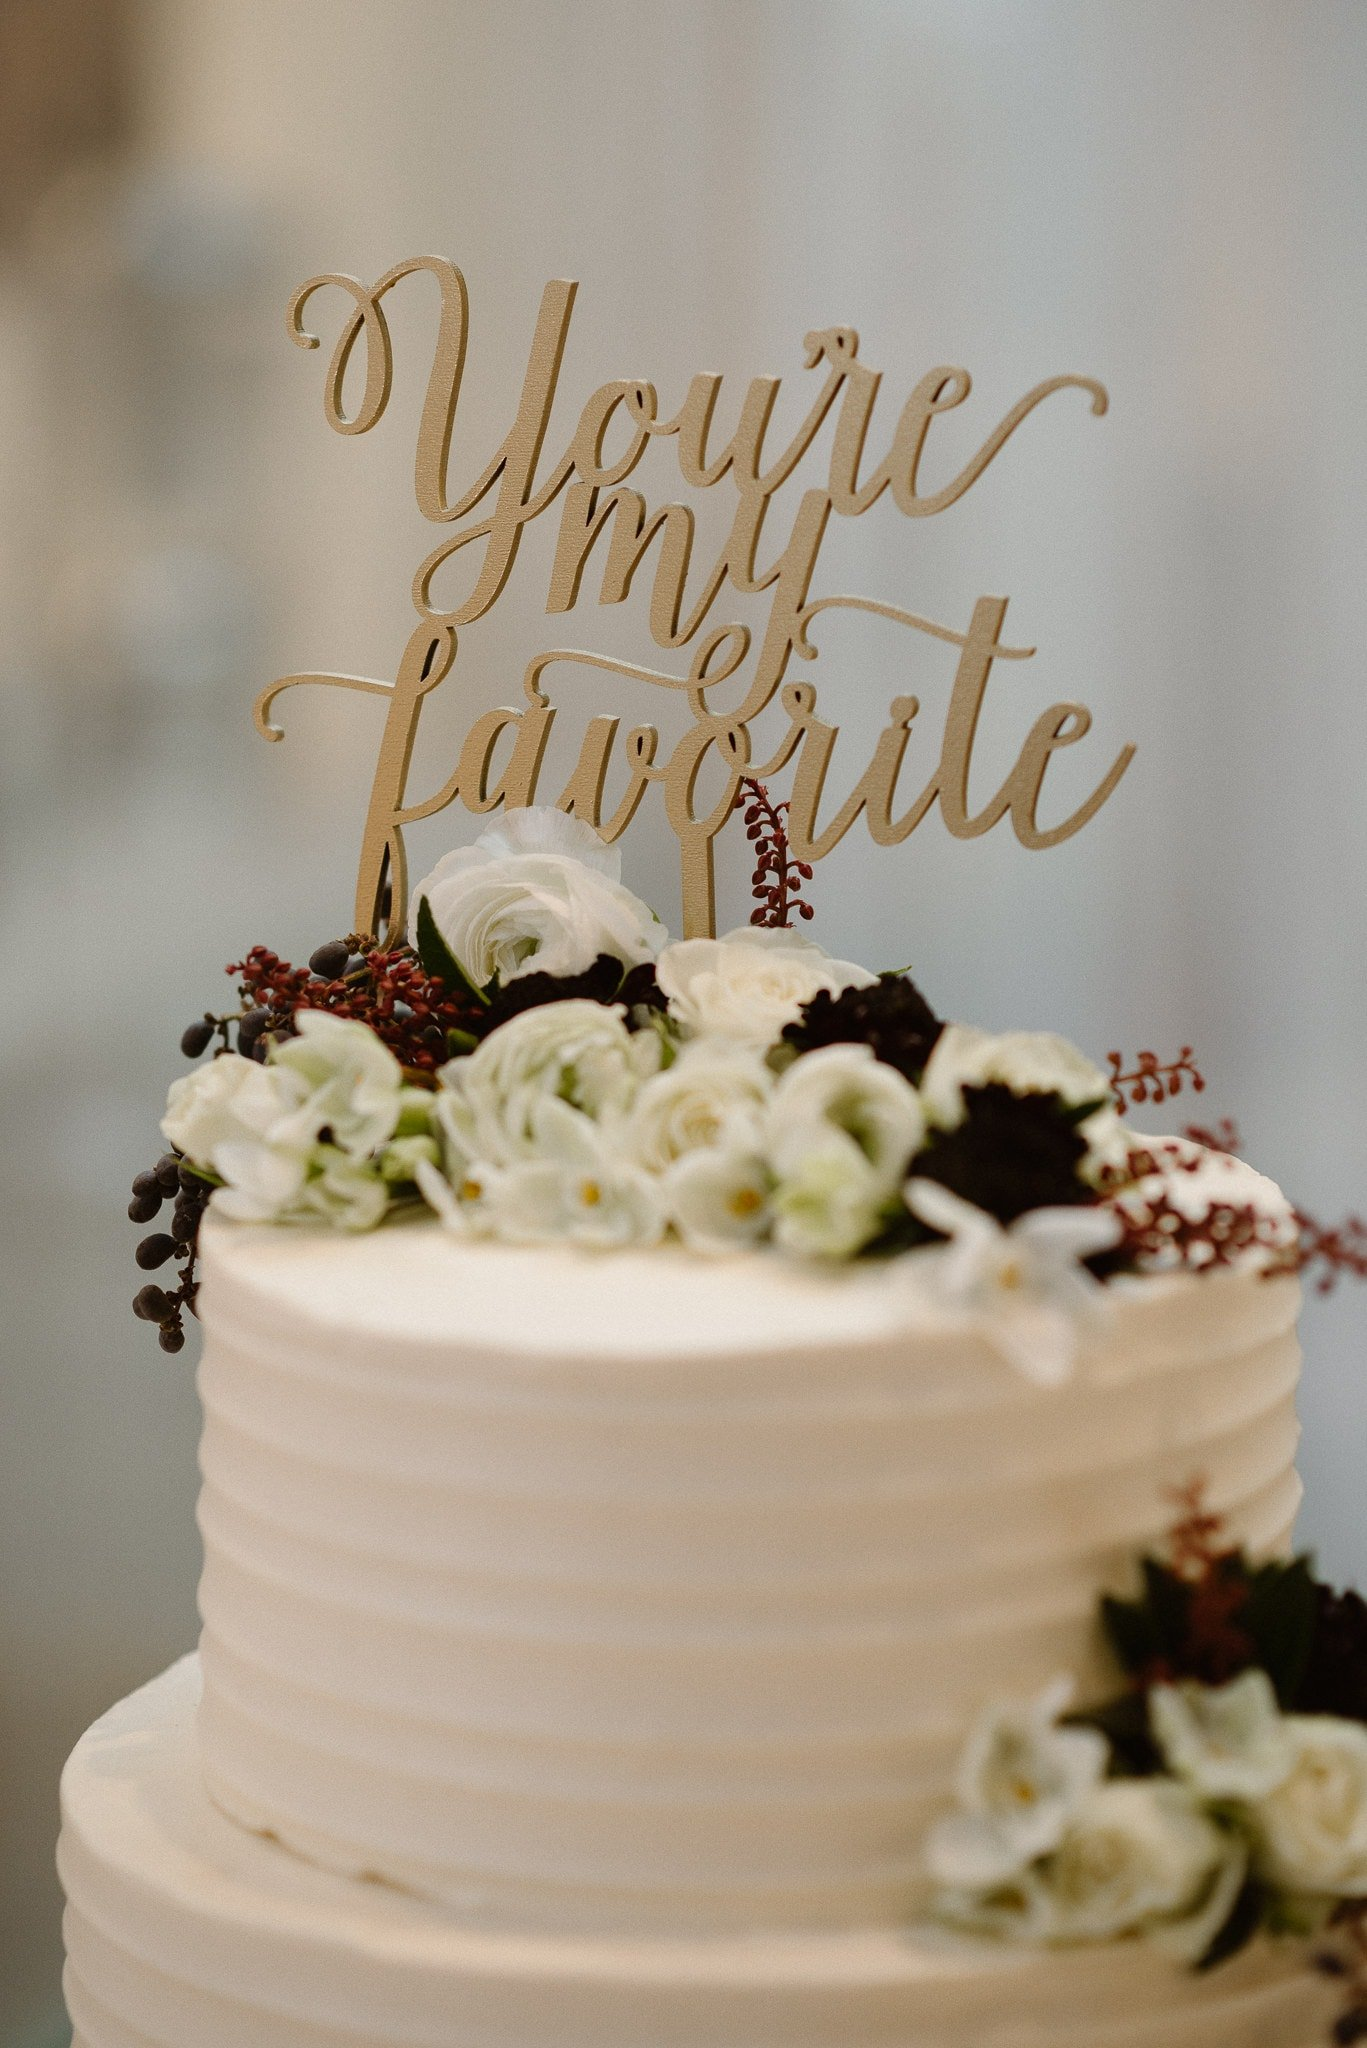 Rembrandt Yard wedding photographer, Boulder wedding photographer, Colorado Jewish wedding, wedding cake table with white cake and